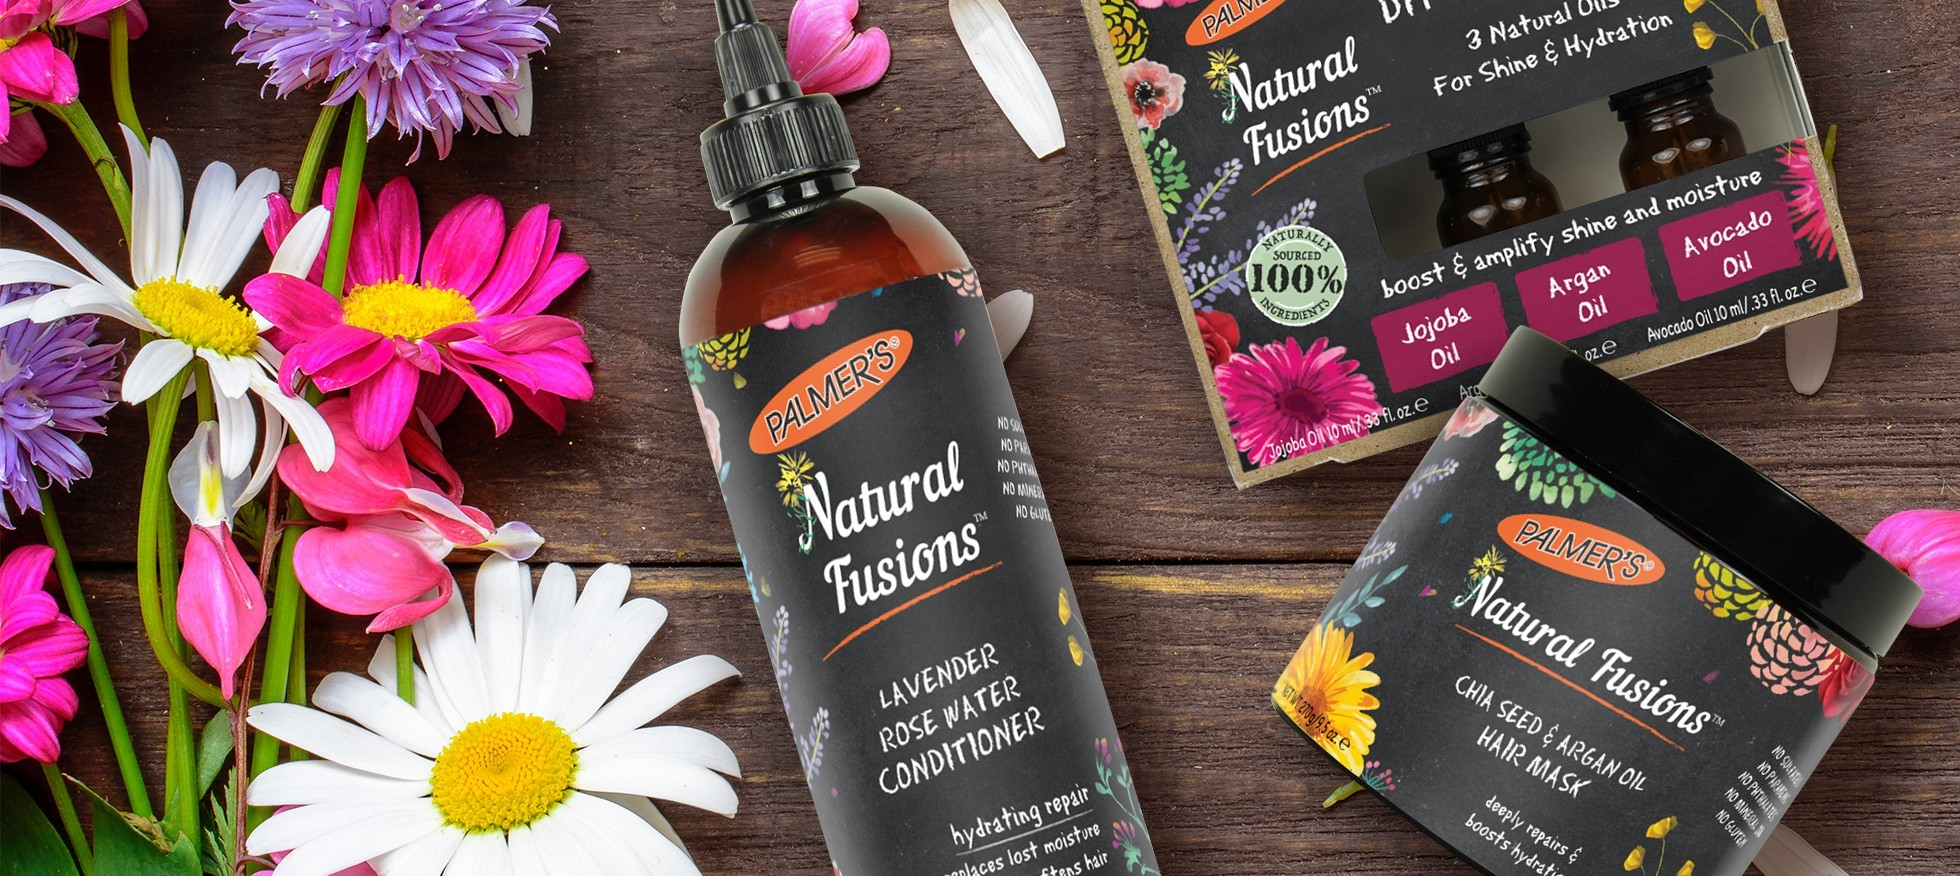 Natural Fusions Hair Care Products